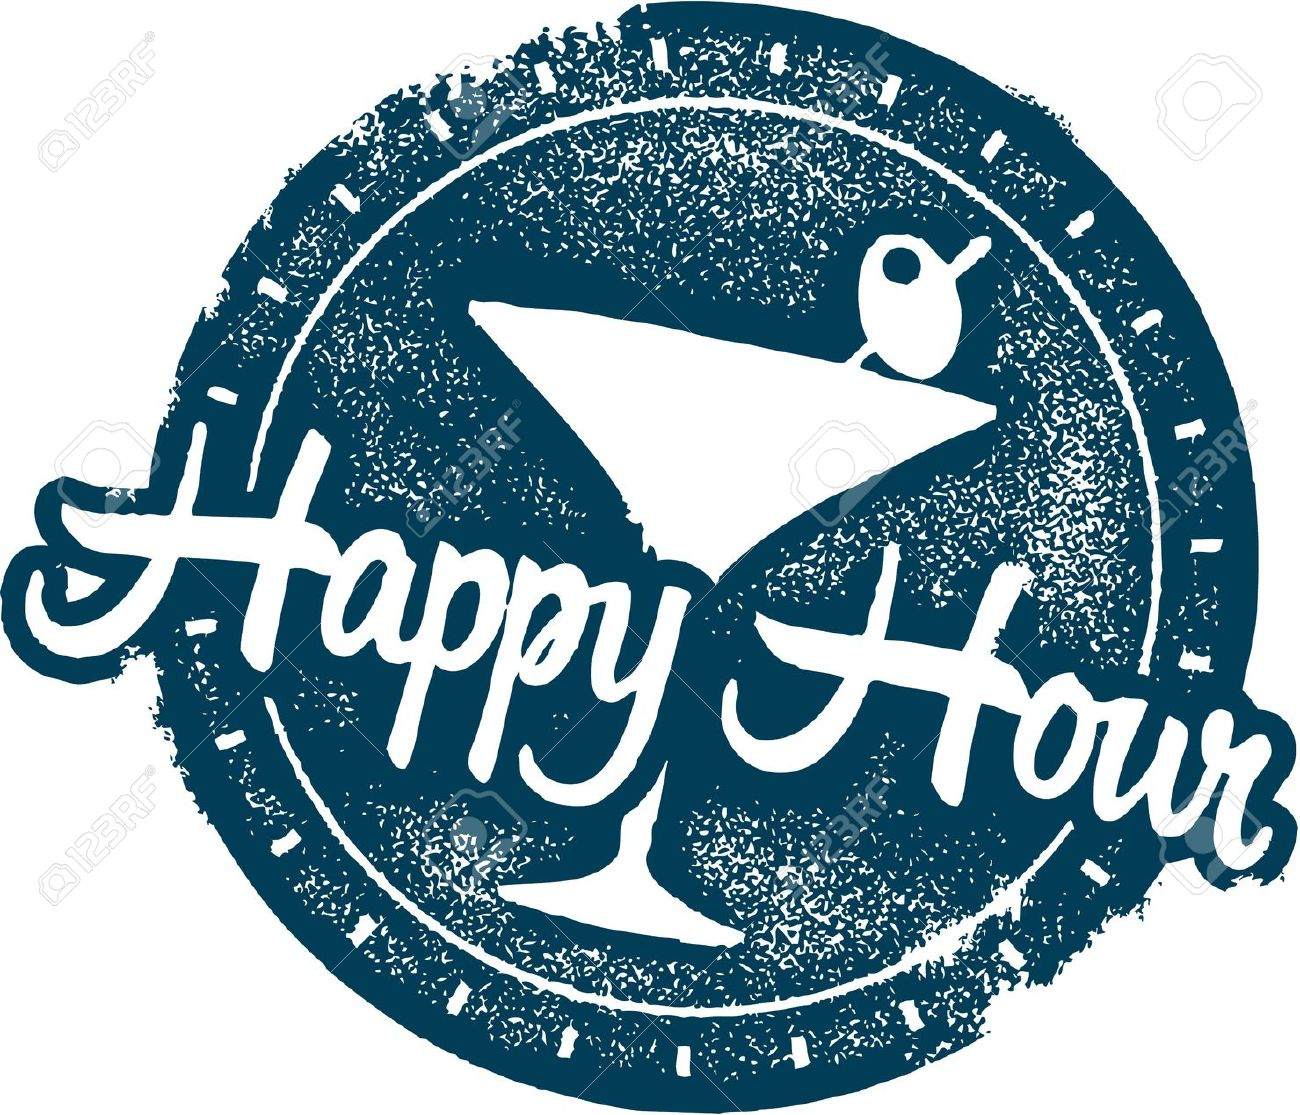 Free Cocktail Hour Cliparts, Download Free Clip Art, Free Clip Art.